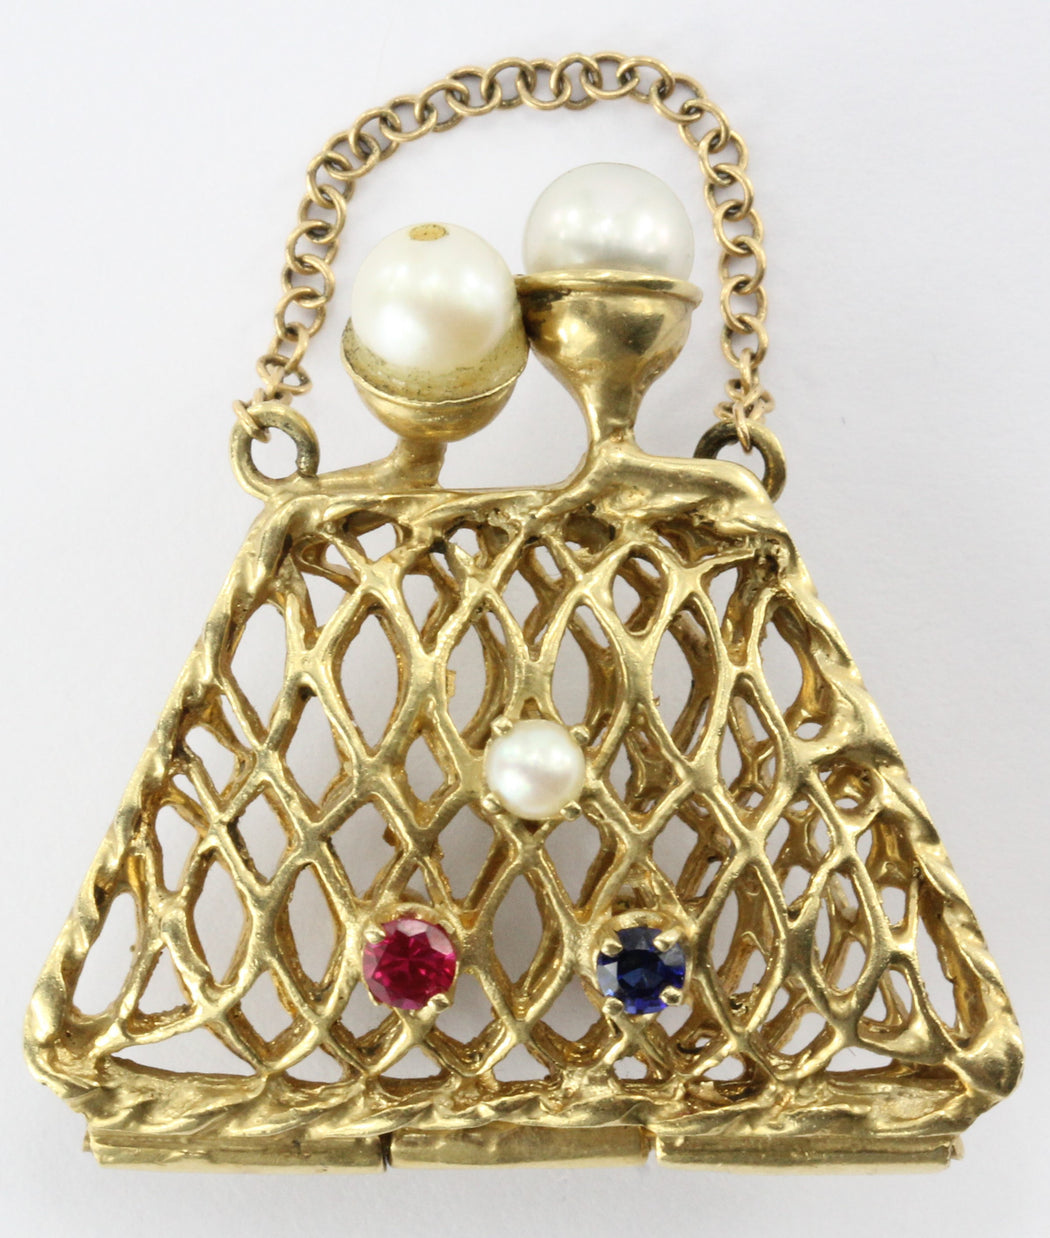 14K Gold Woven Sapphire, Ruby, & Pearl Opening Purse Pendant / Charm - Queen May